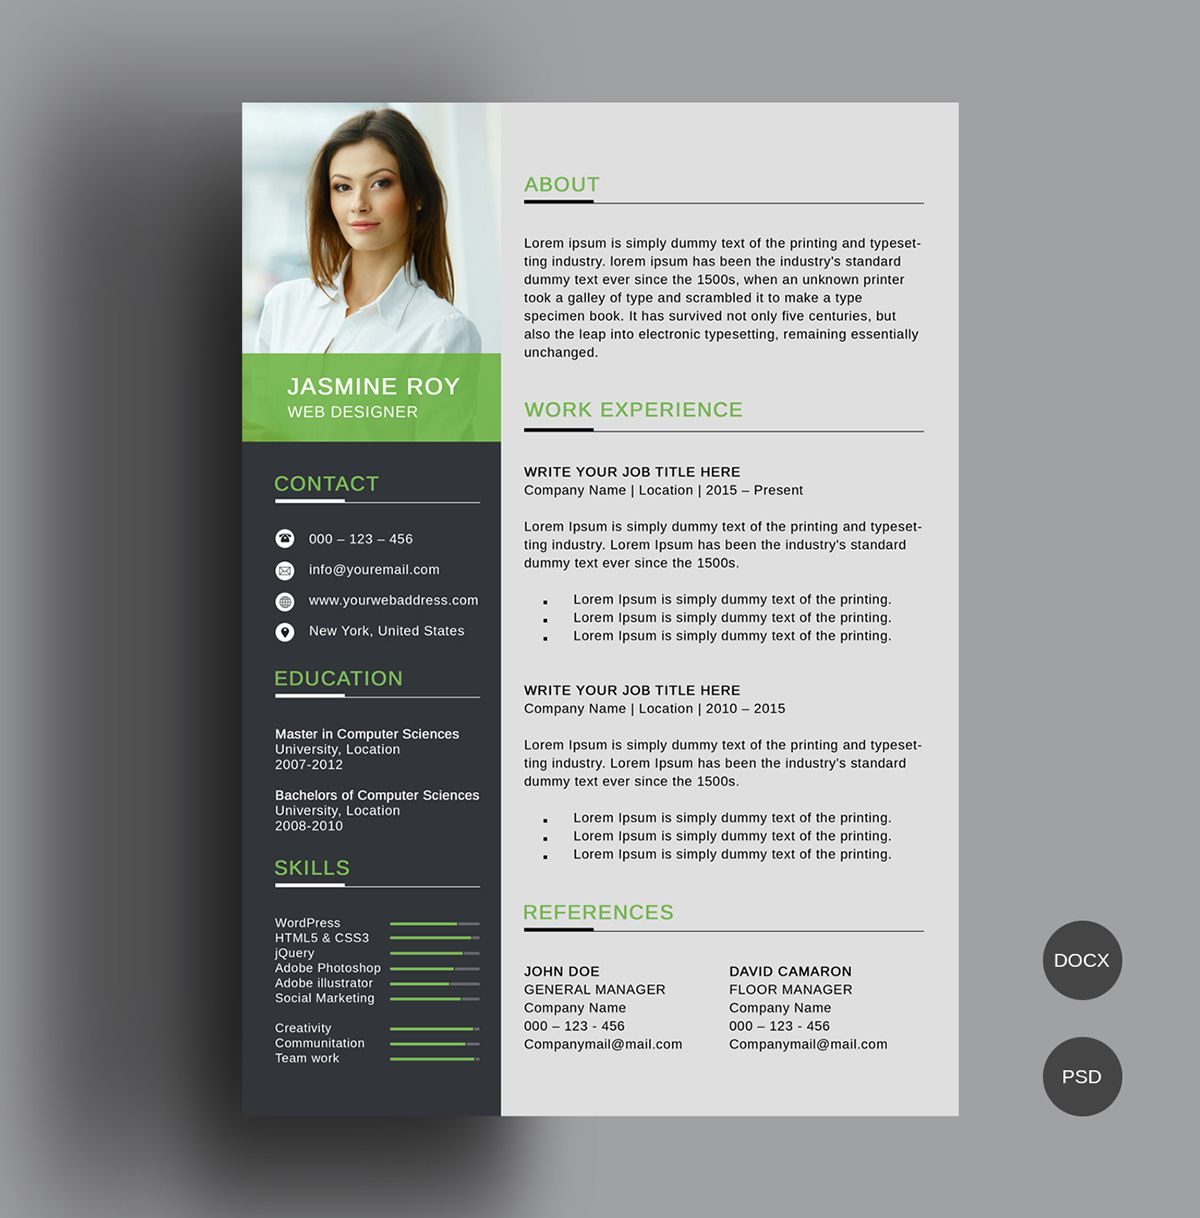 001 Excellent Photoshop Resume Template Free Download Design  Creative Cv PsdFull